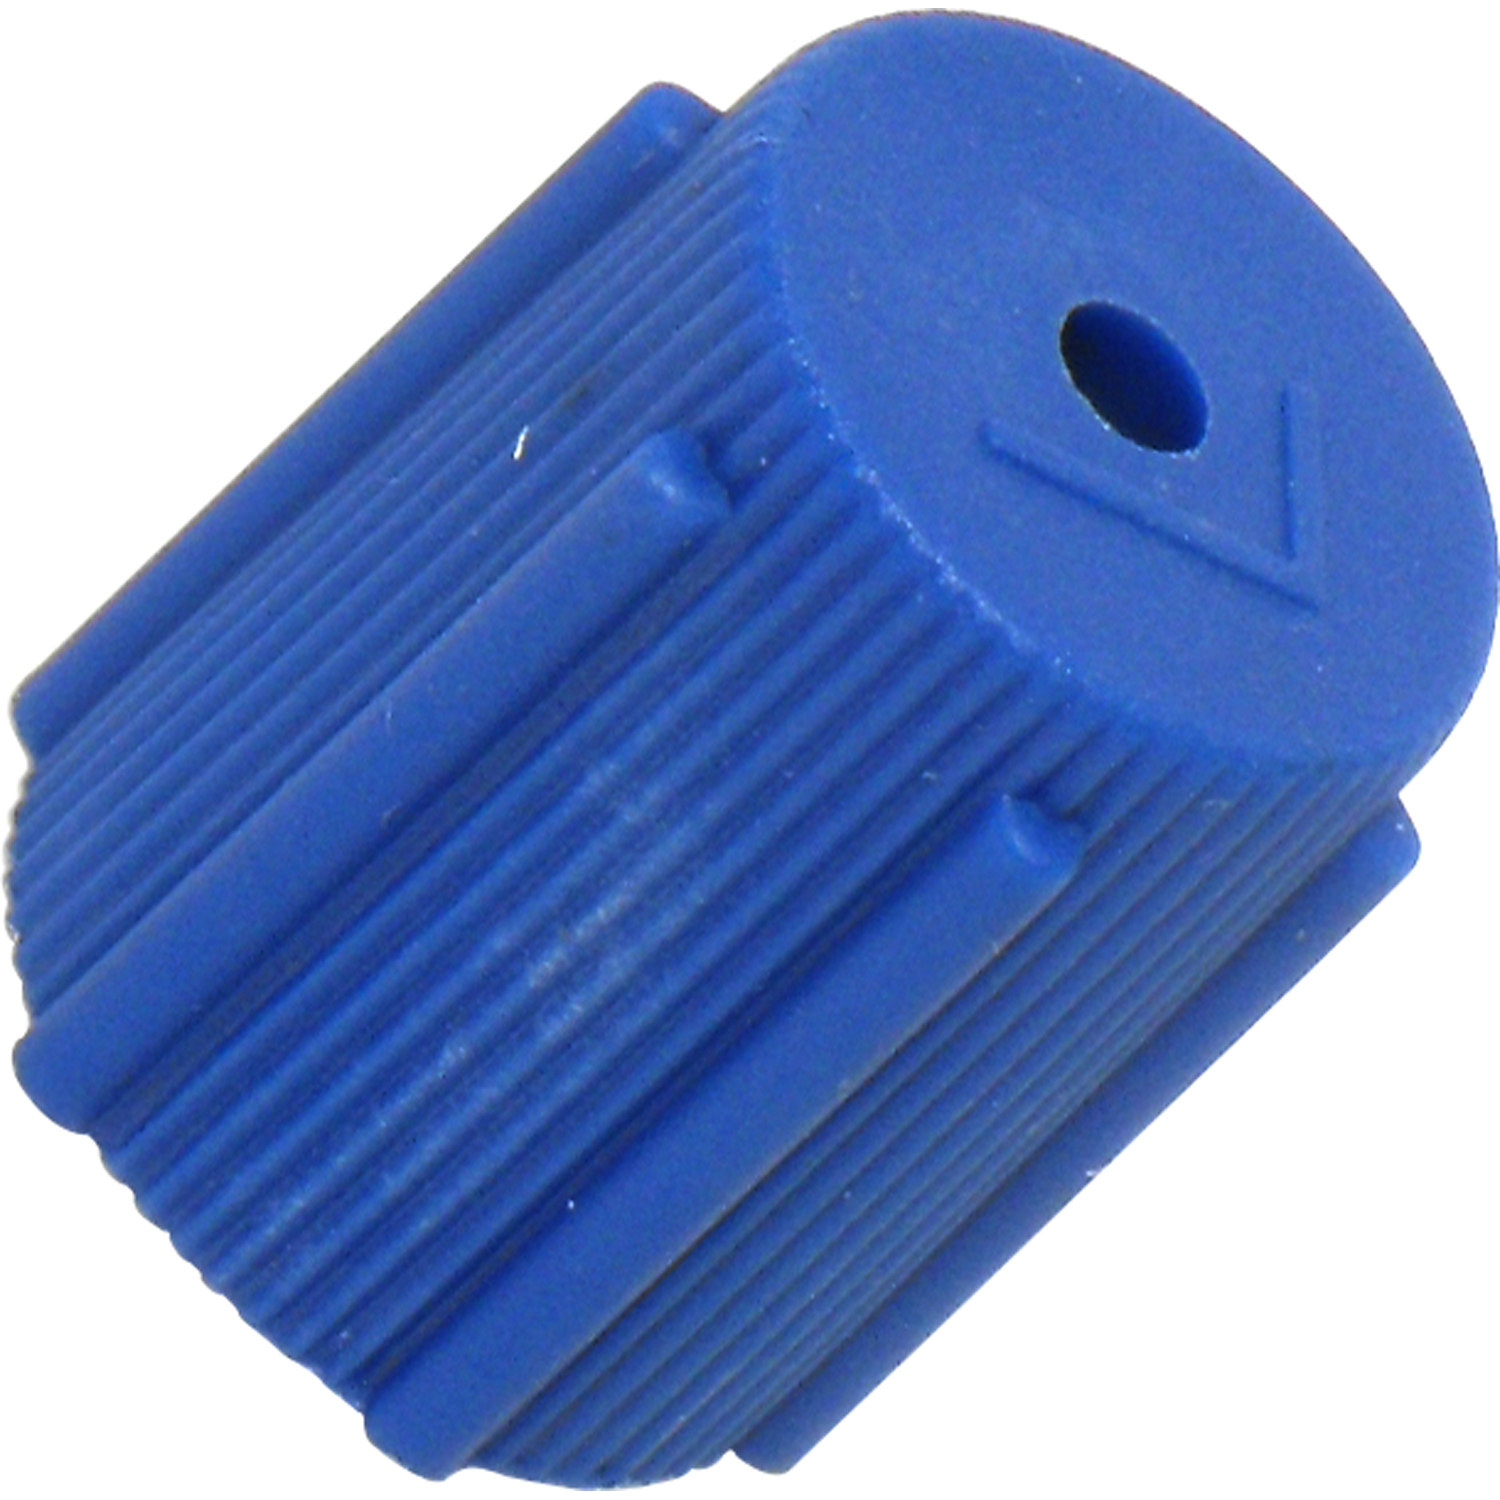 Cap Low Side STD Retrofit Service Cap & Fits all R134a retrofit low side service port adapters   Quick disconnect